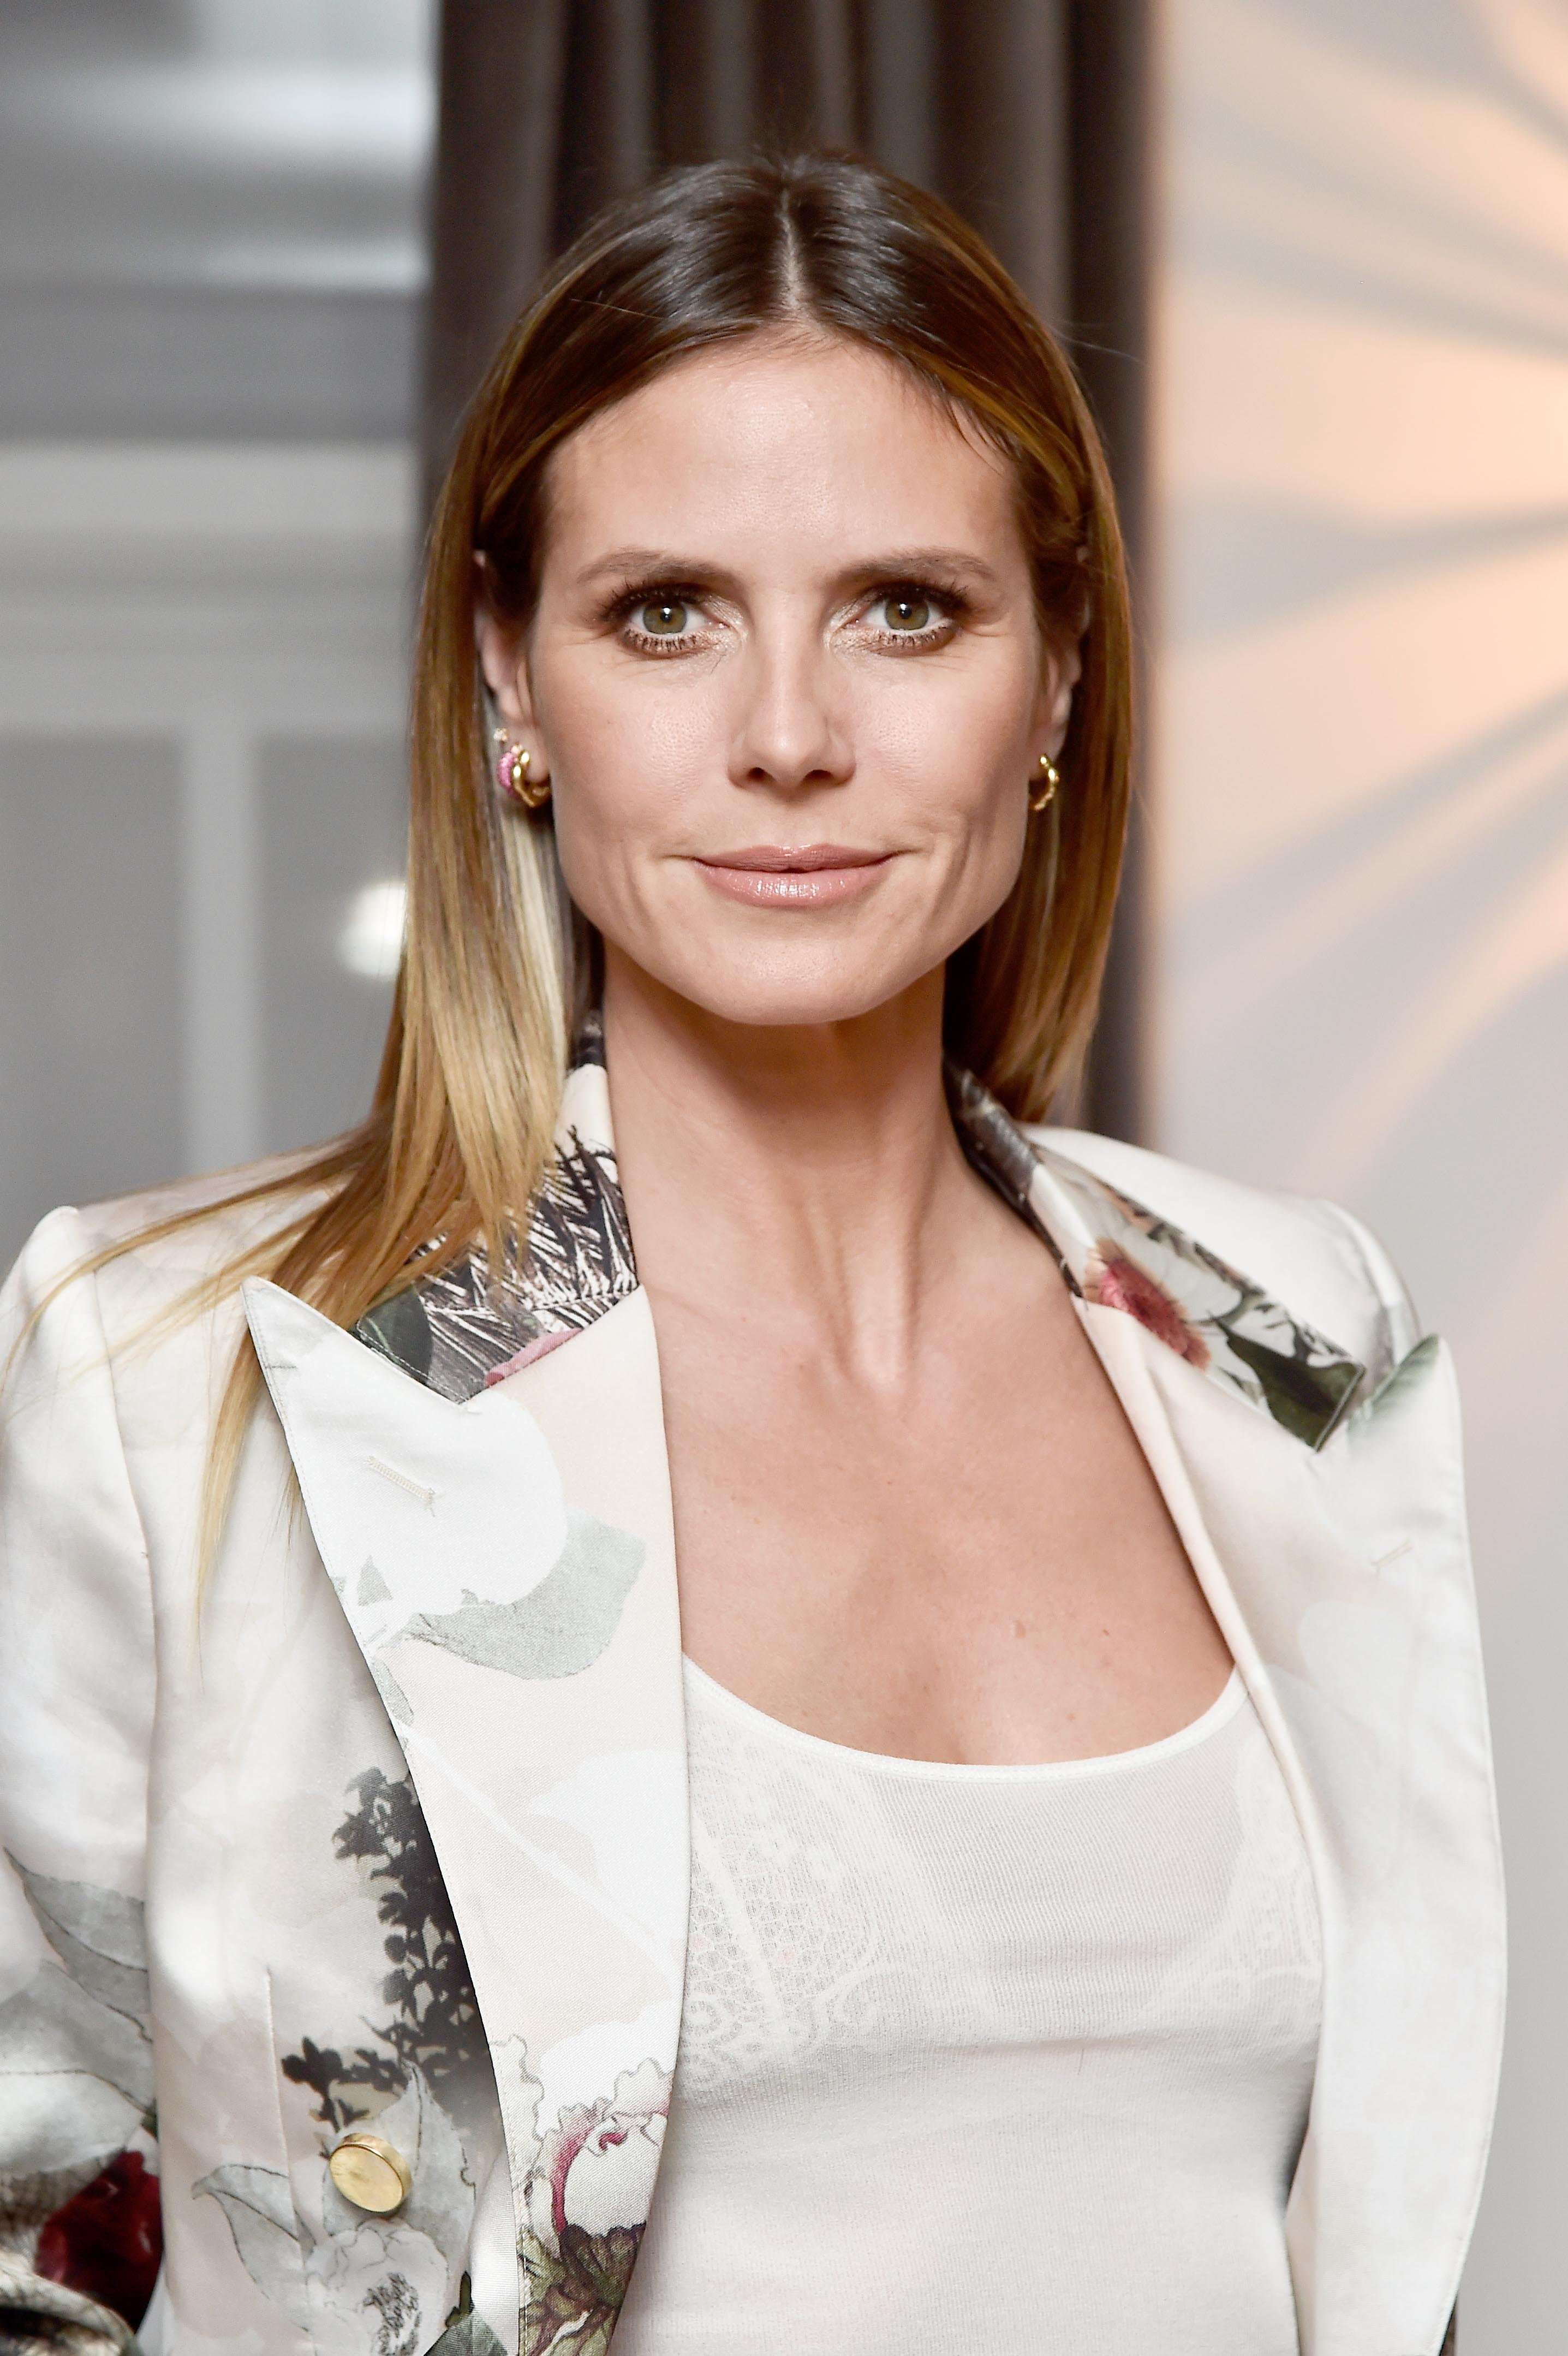 Heidi Klum at the Wolk Morais Collection 6 Fashion Show at The Hollywood Roosevelt Hotel in Los Angeles, California | PhotO: Frazer Harrison/Getty Images for Wolk Morais